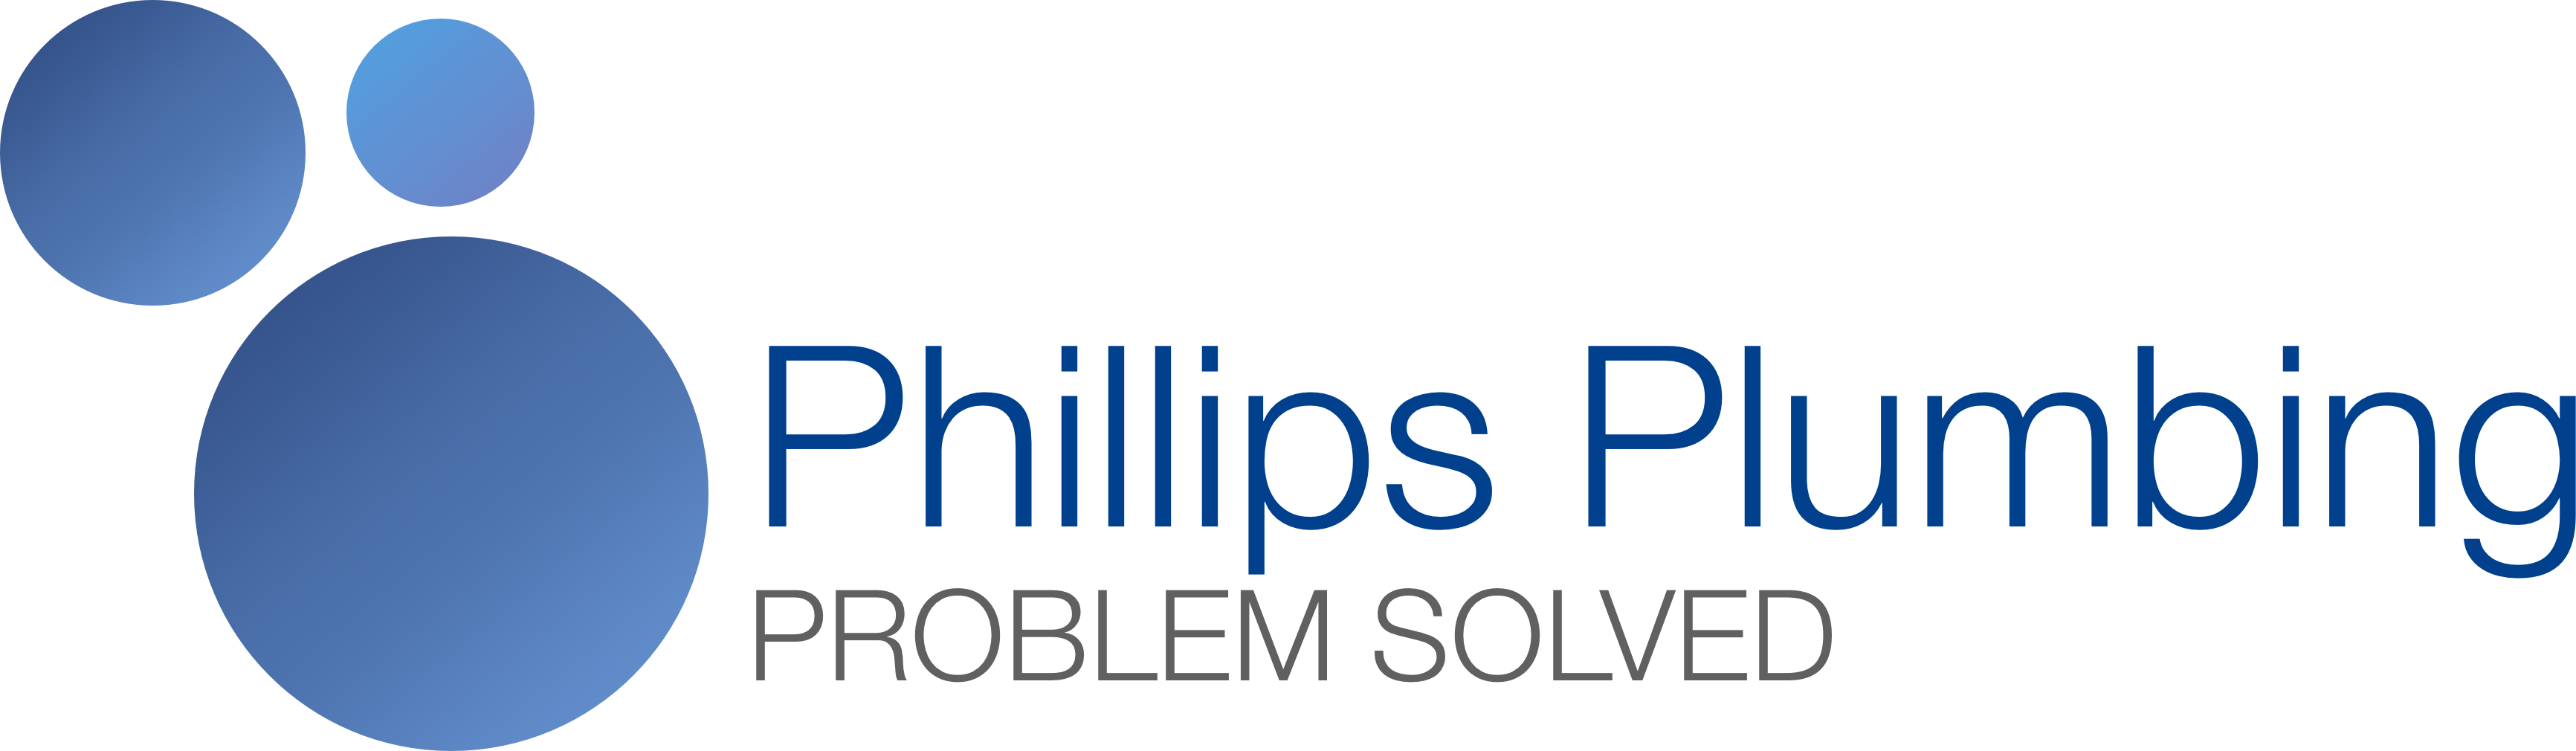 Phillips Plumbing Phillips Plumbing specialise in heating installation, service and repair and are happy to help you with any of your plumbing and heating needs no matter how big or small.